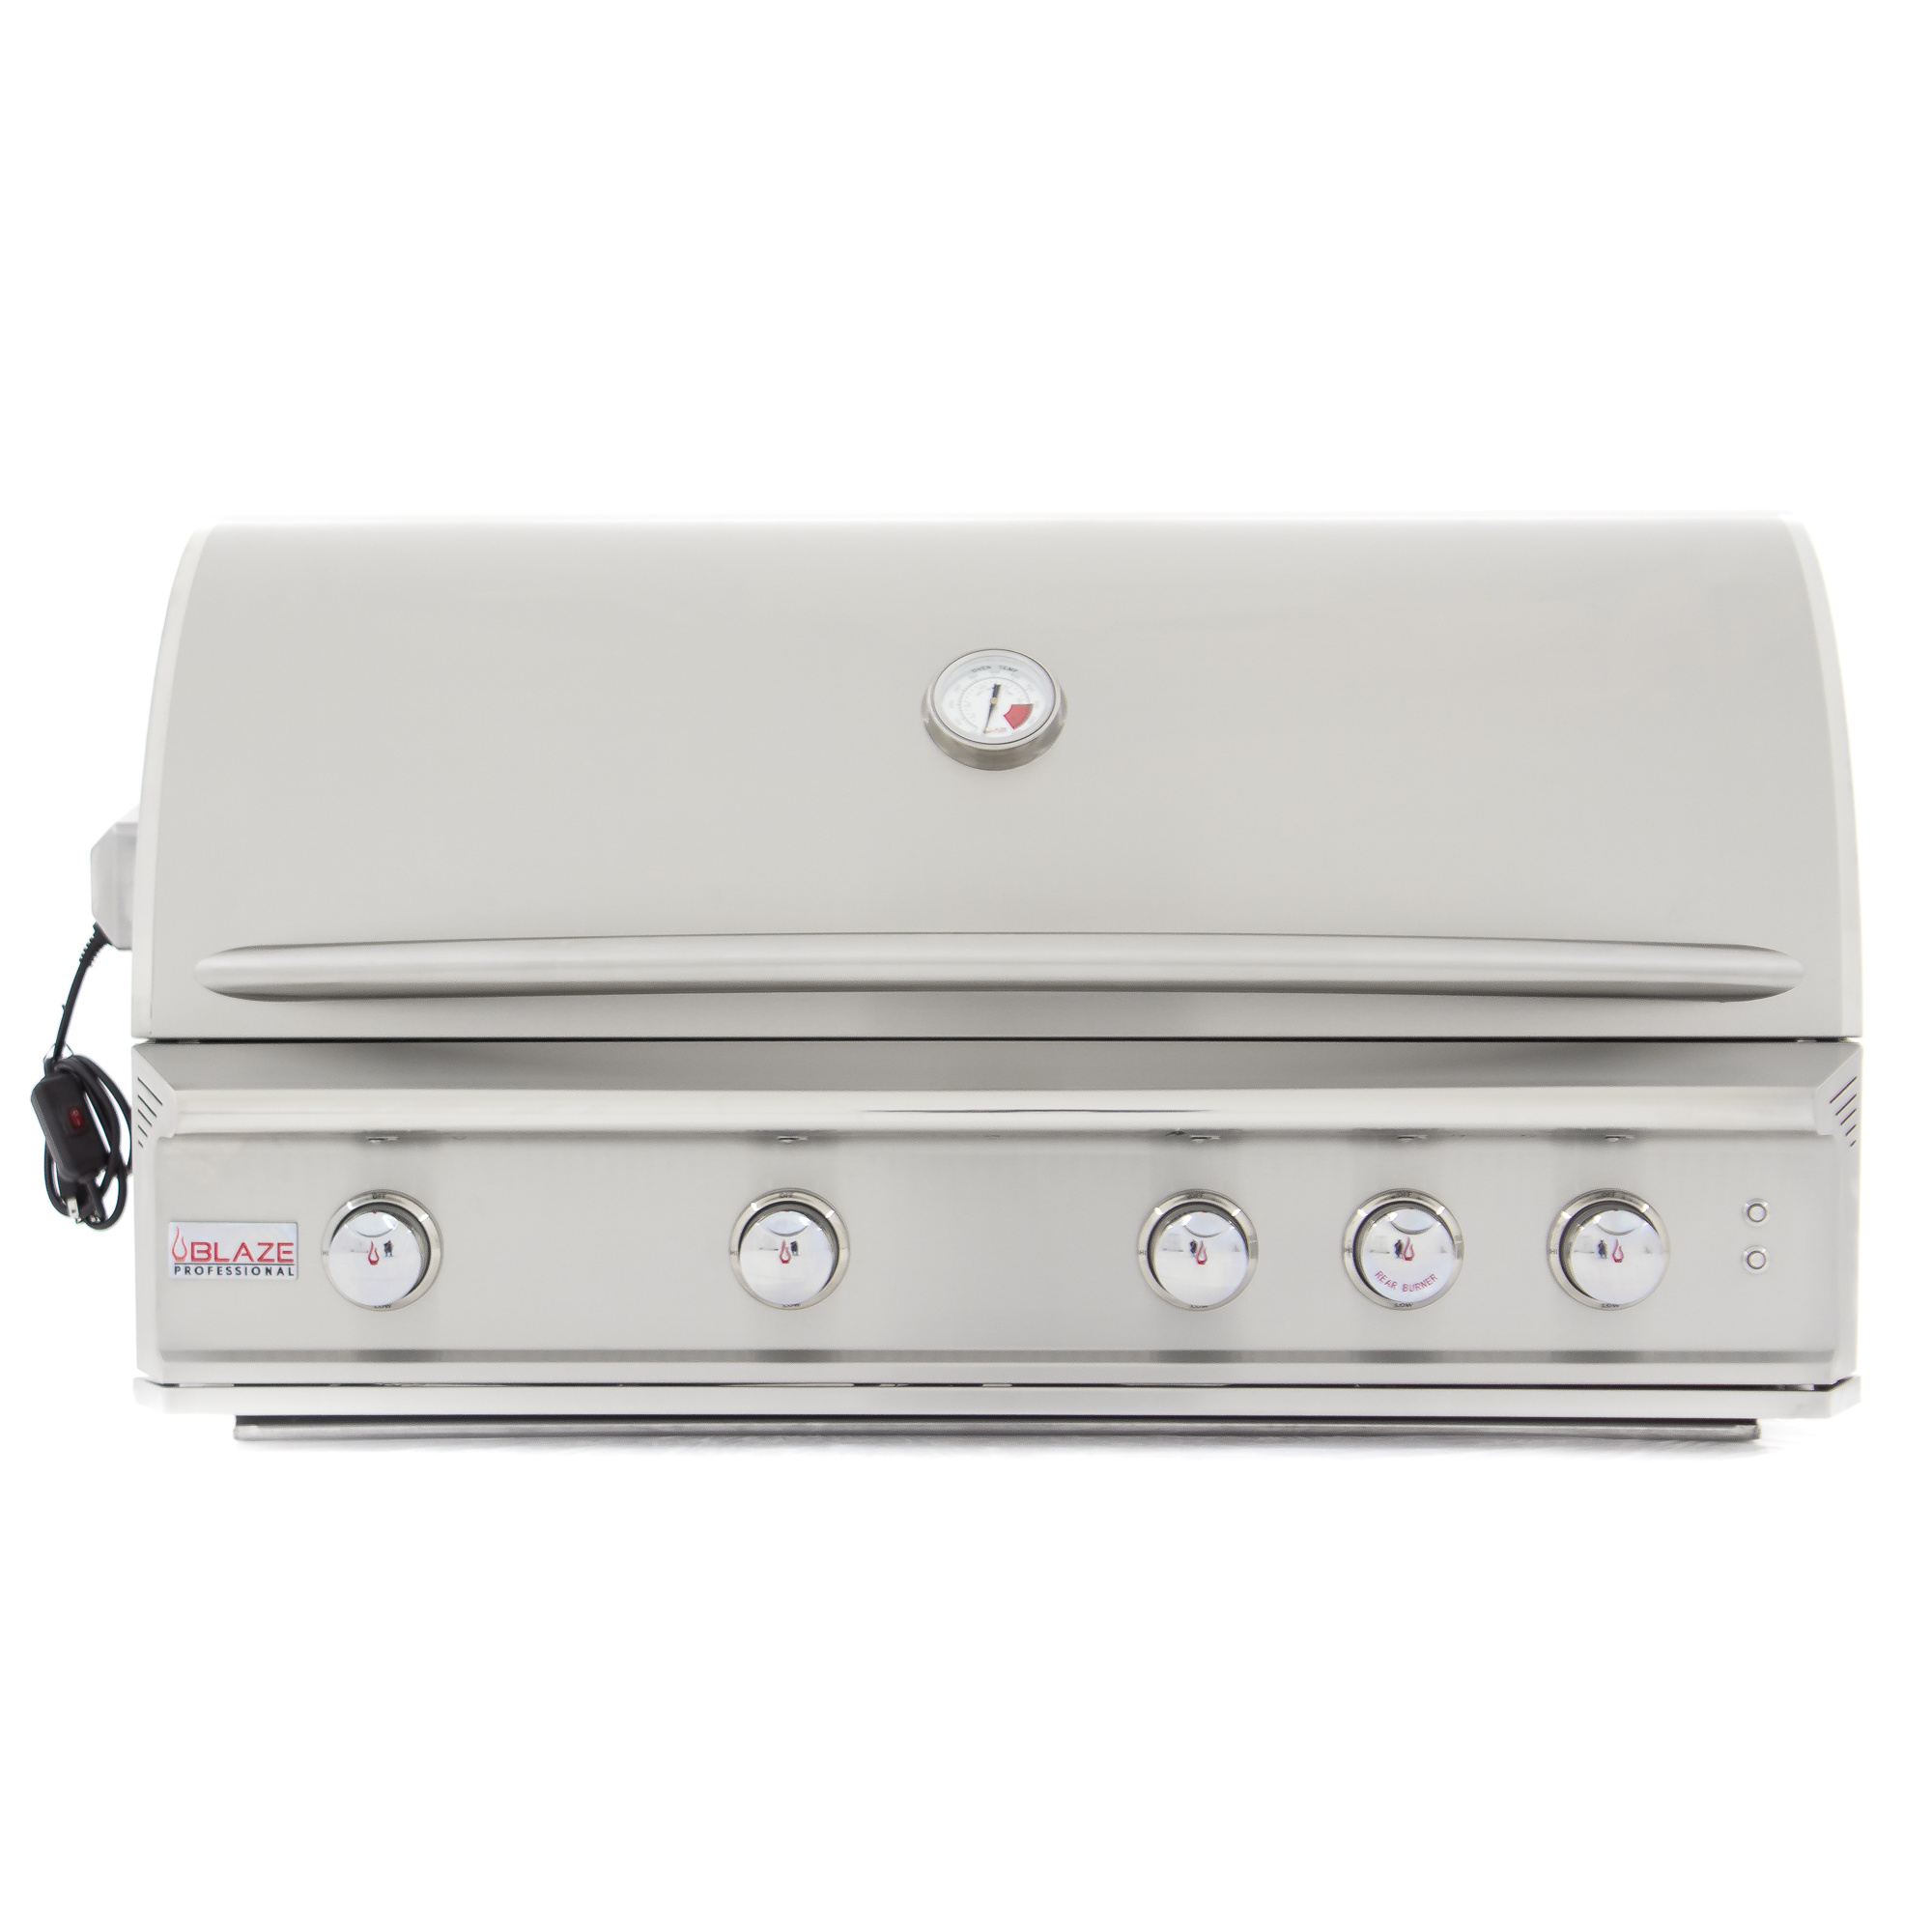 Gasgrill Seattle Blaze Professional 44 Inch 4 Burner Built In Gas Grill With Rear